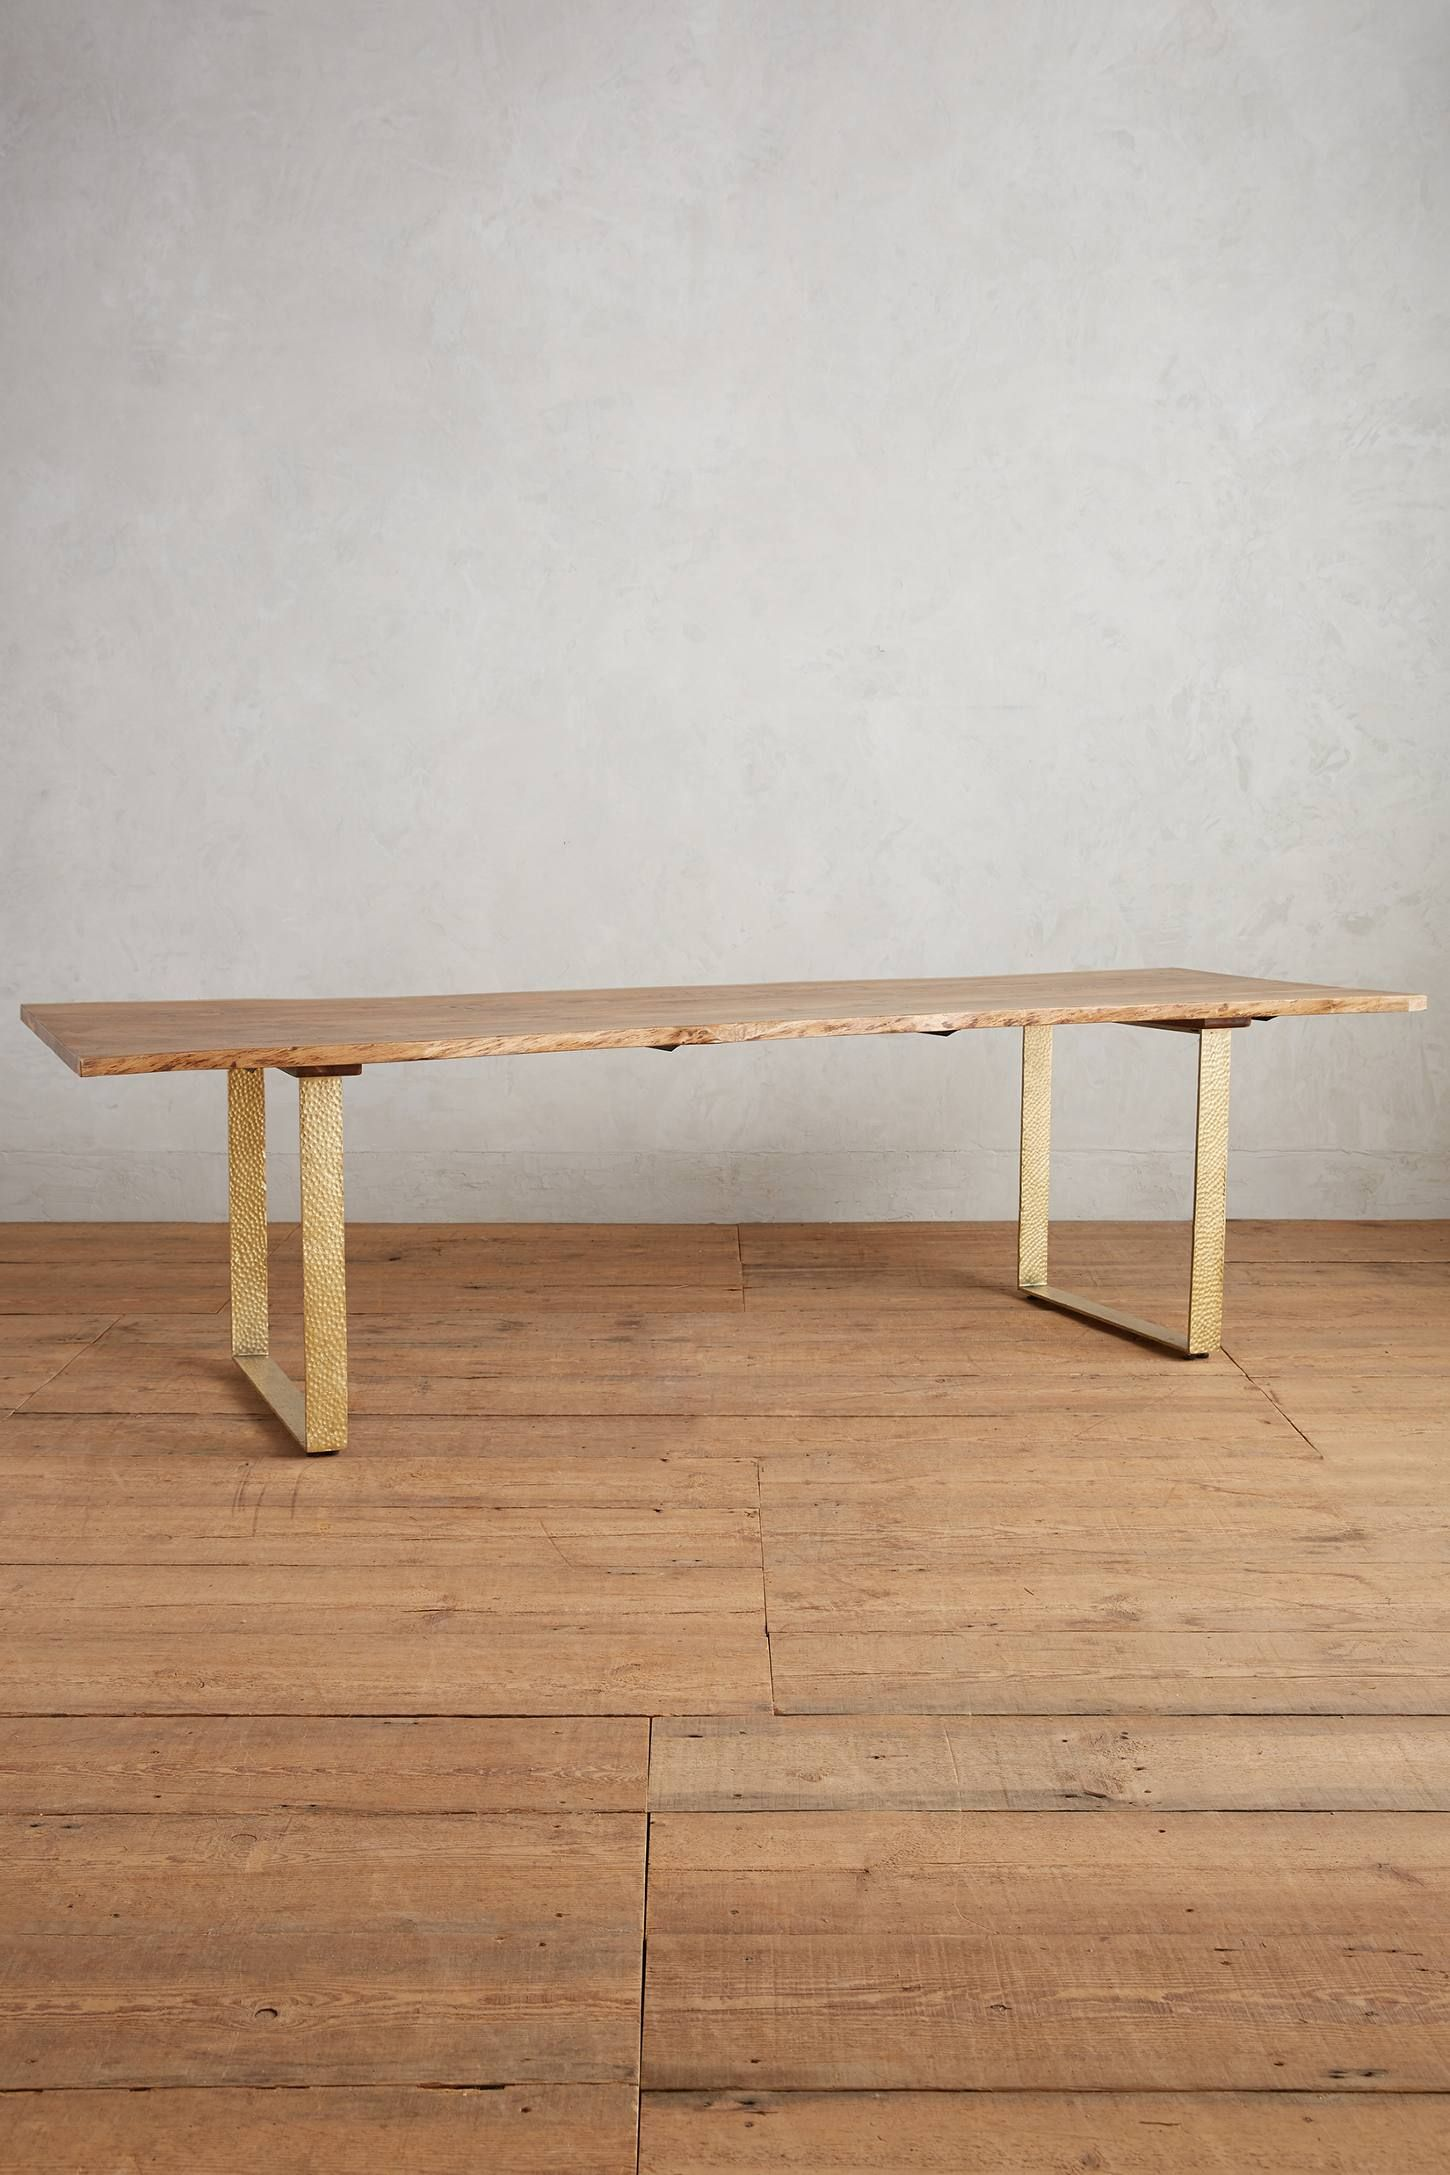 Shop the smoked oak dining table and more anthropologie at anthropologie today read customer reviews discover product details and more